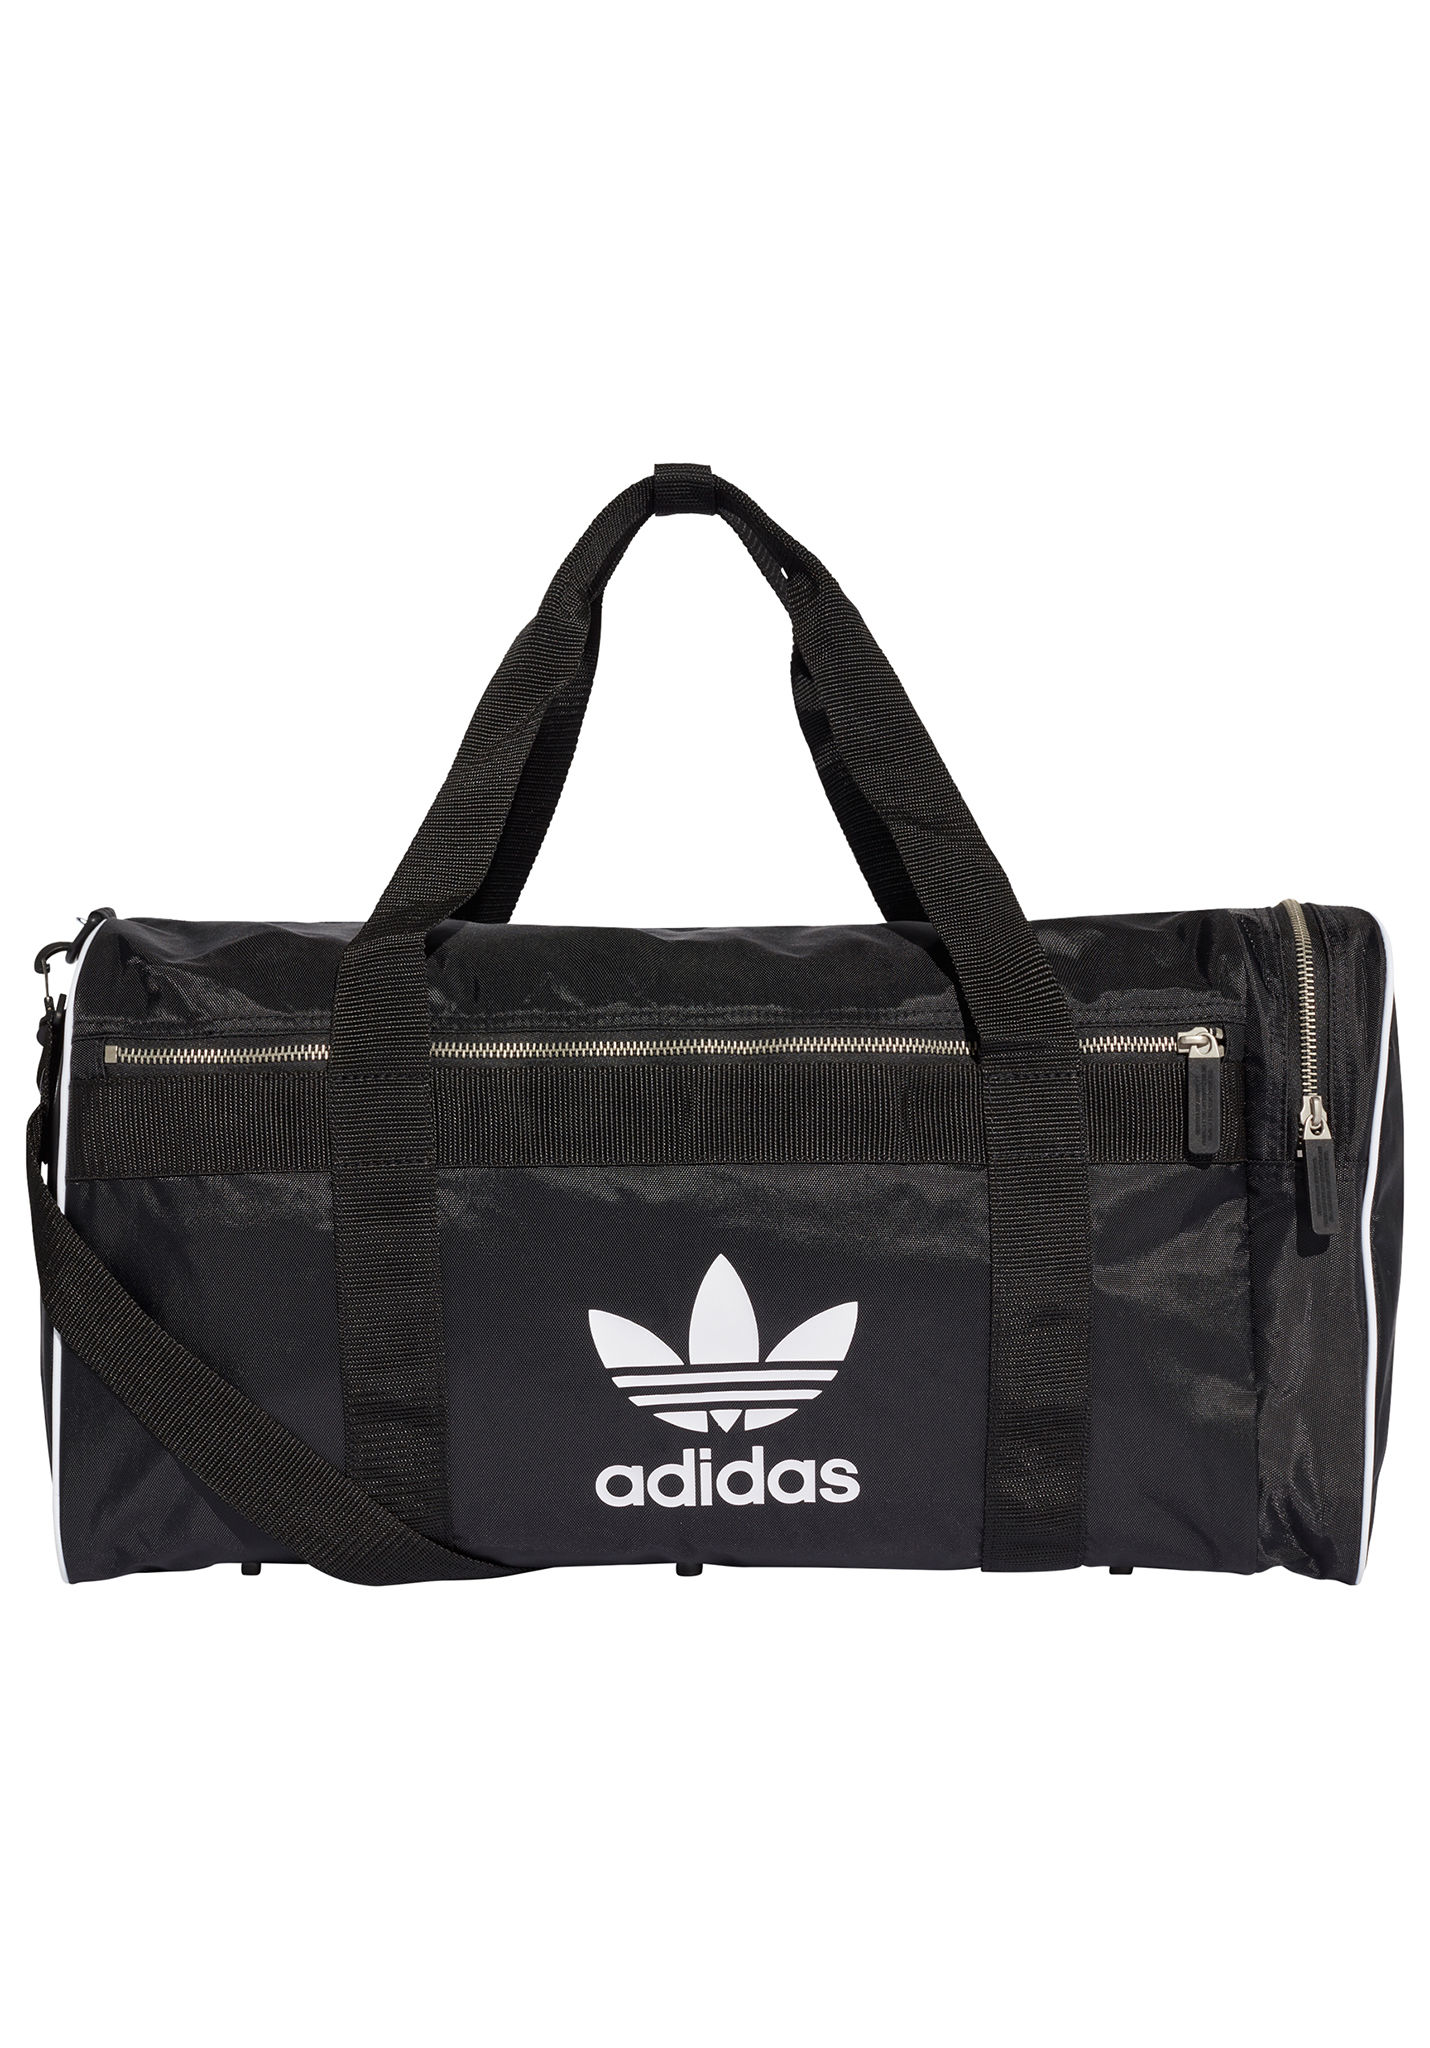 e9327d3e96 ADIDAS ORIGINALS Duffle L - Gym Bag for Men - Black